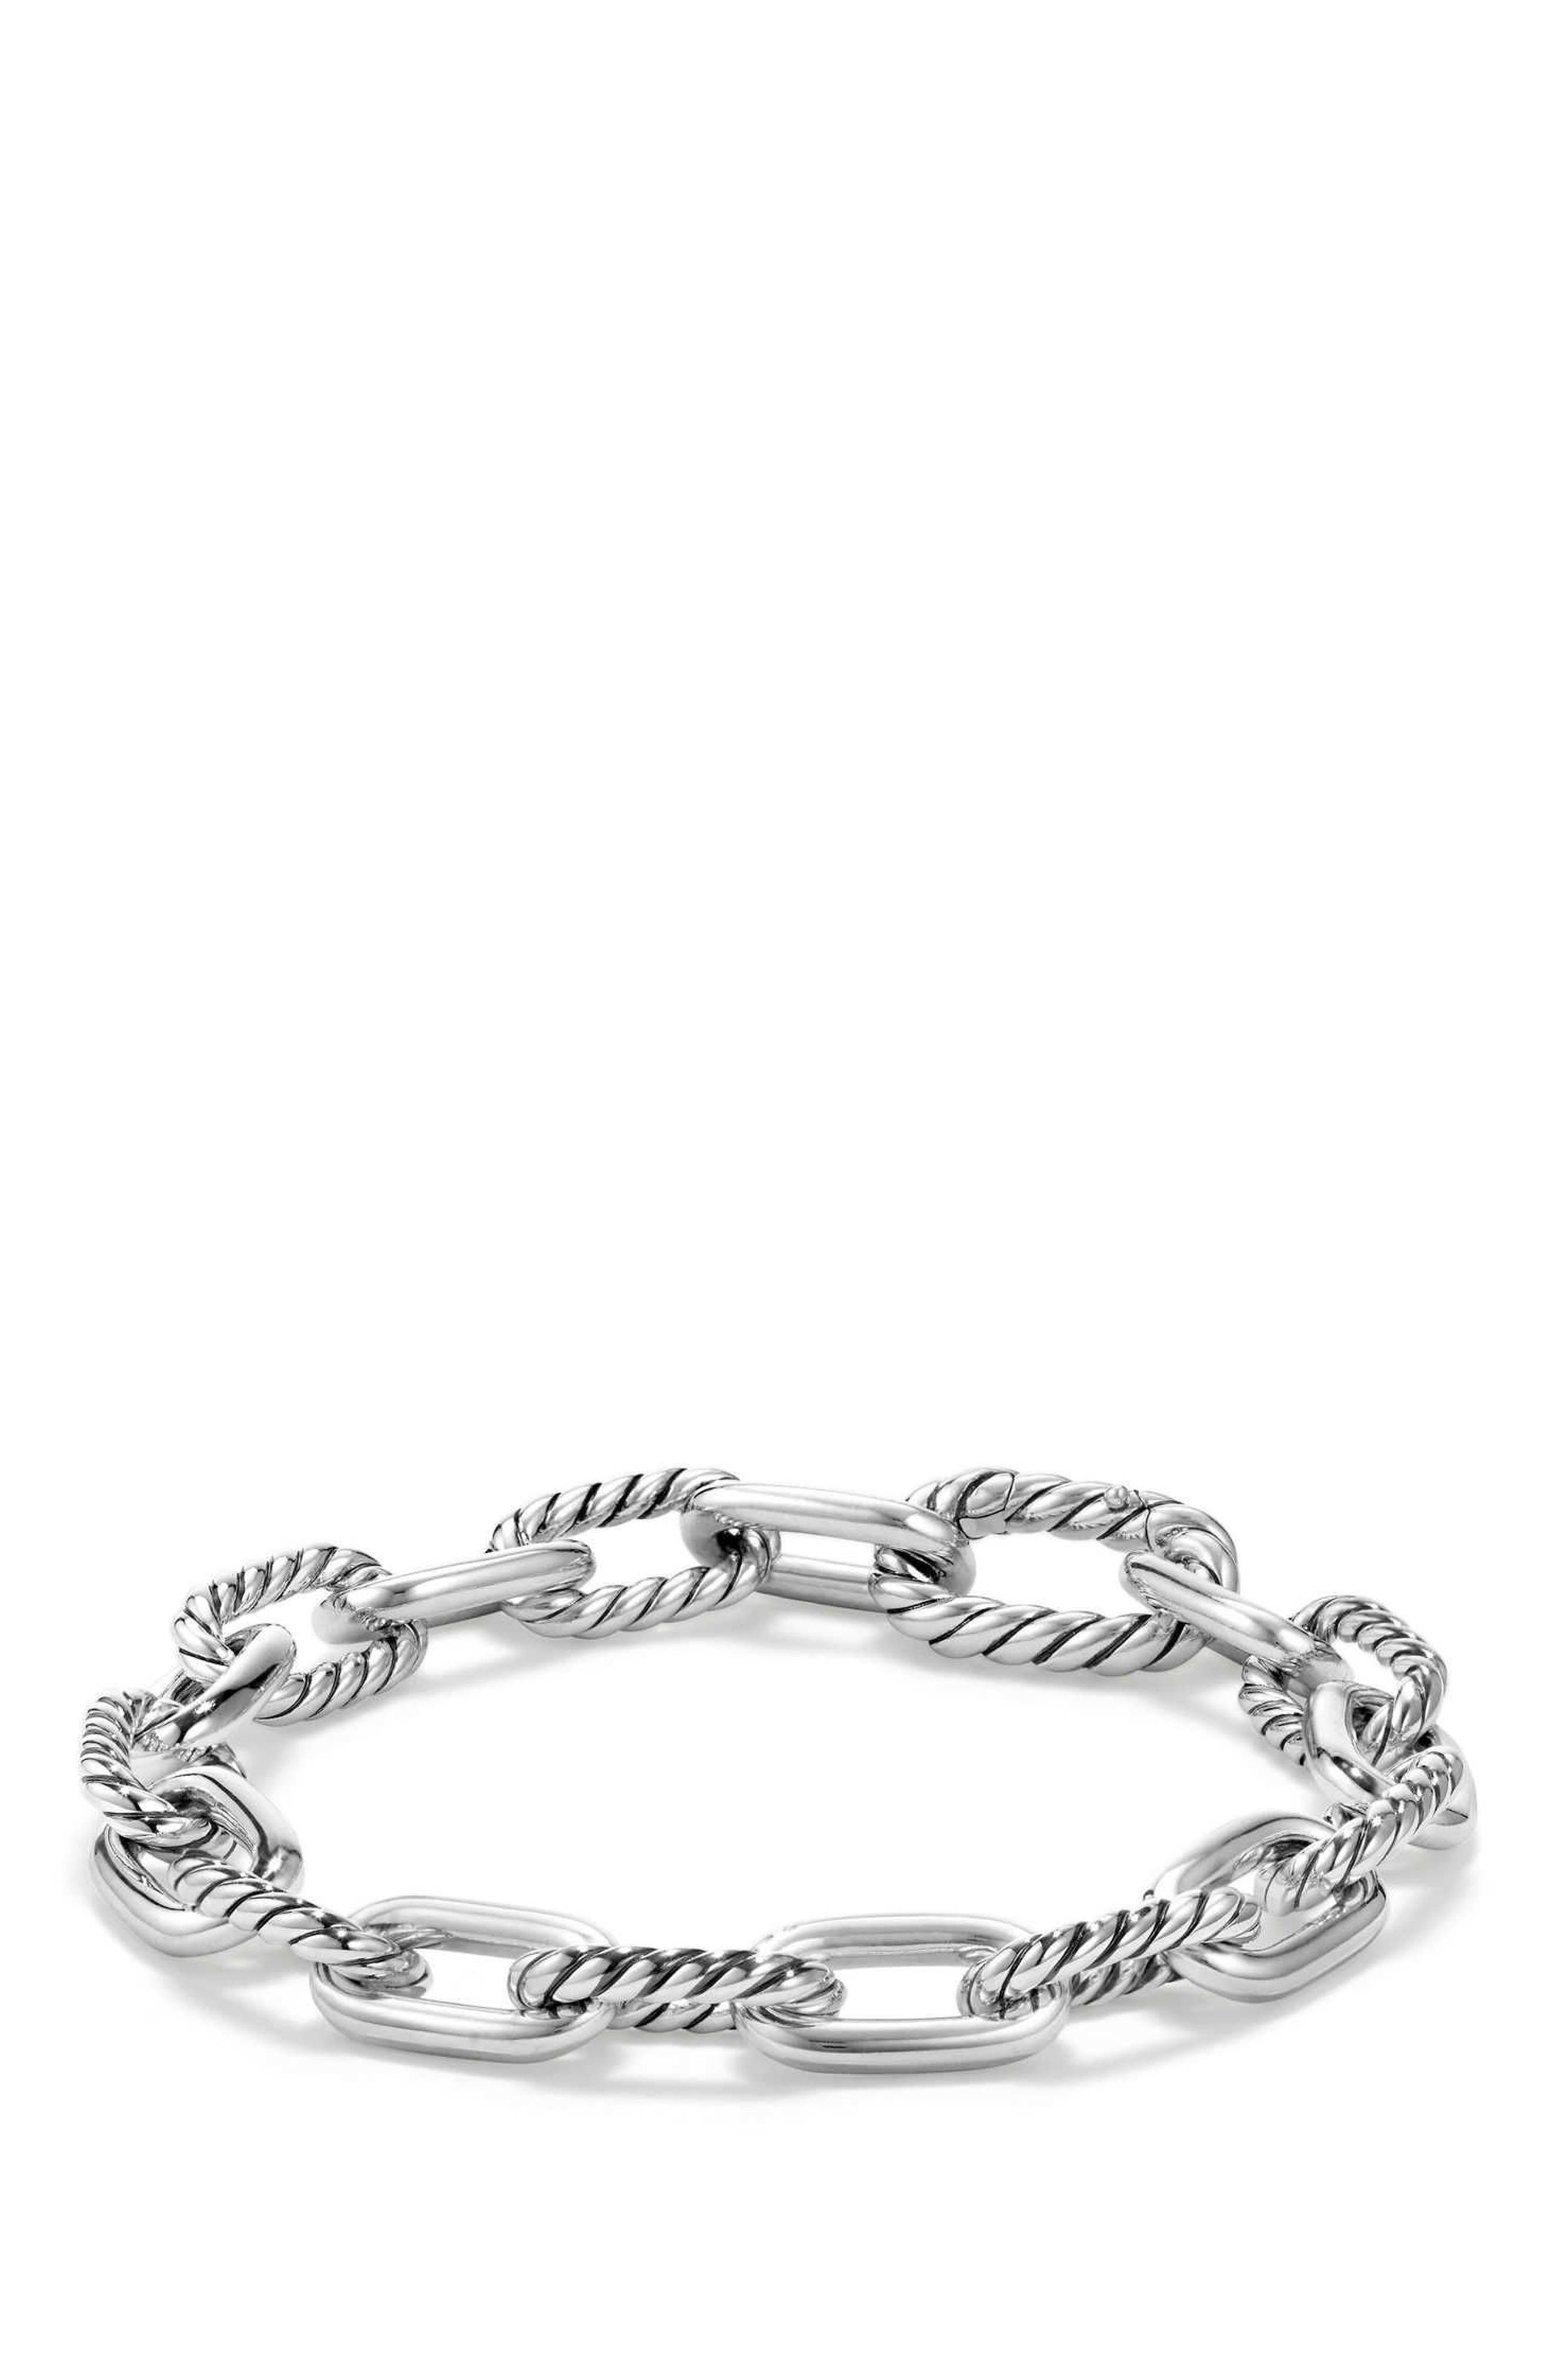 DY Madison Chain Small Bracelet,                             Main thumbnail 1, color,                             Silver